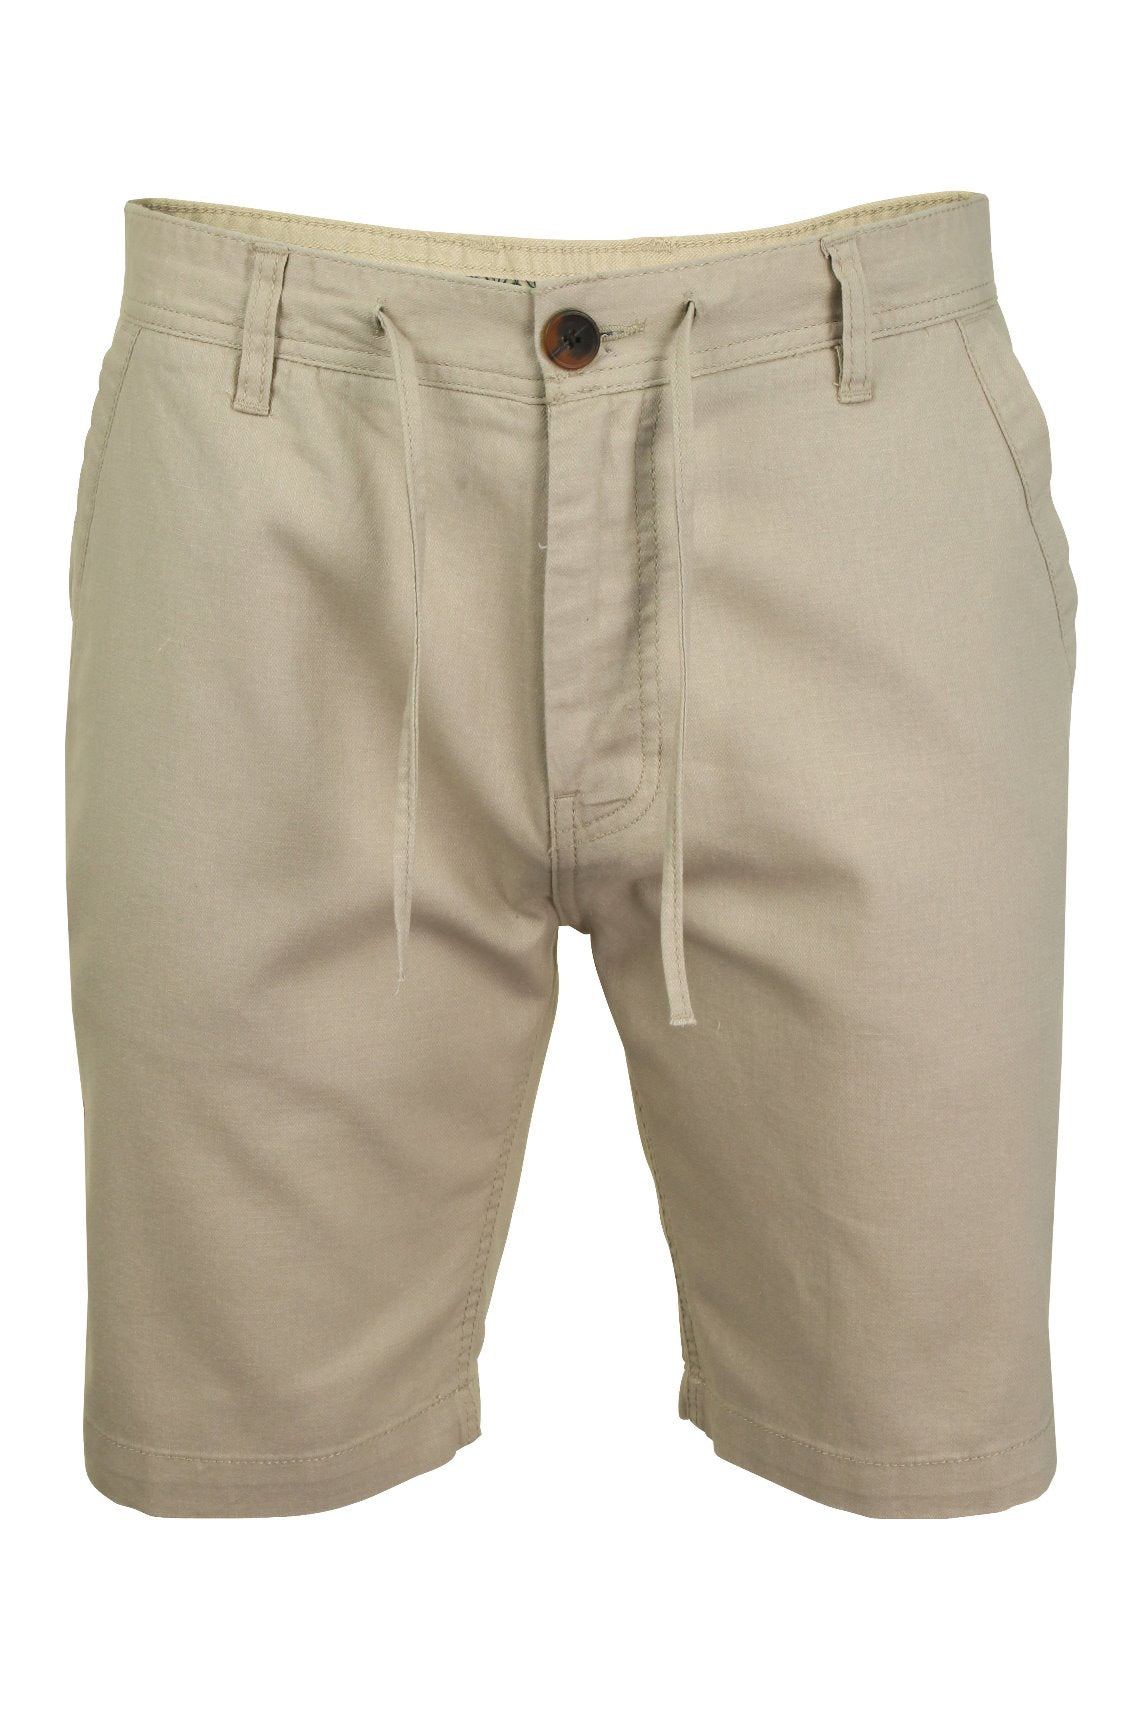 Mens Linen Mix Chino Shorts by Xact-Main Image